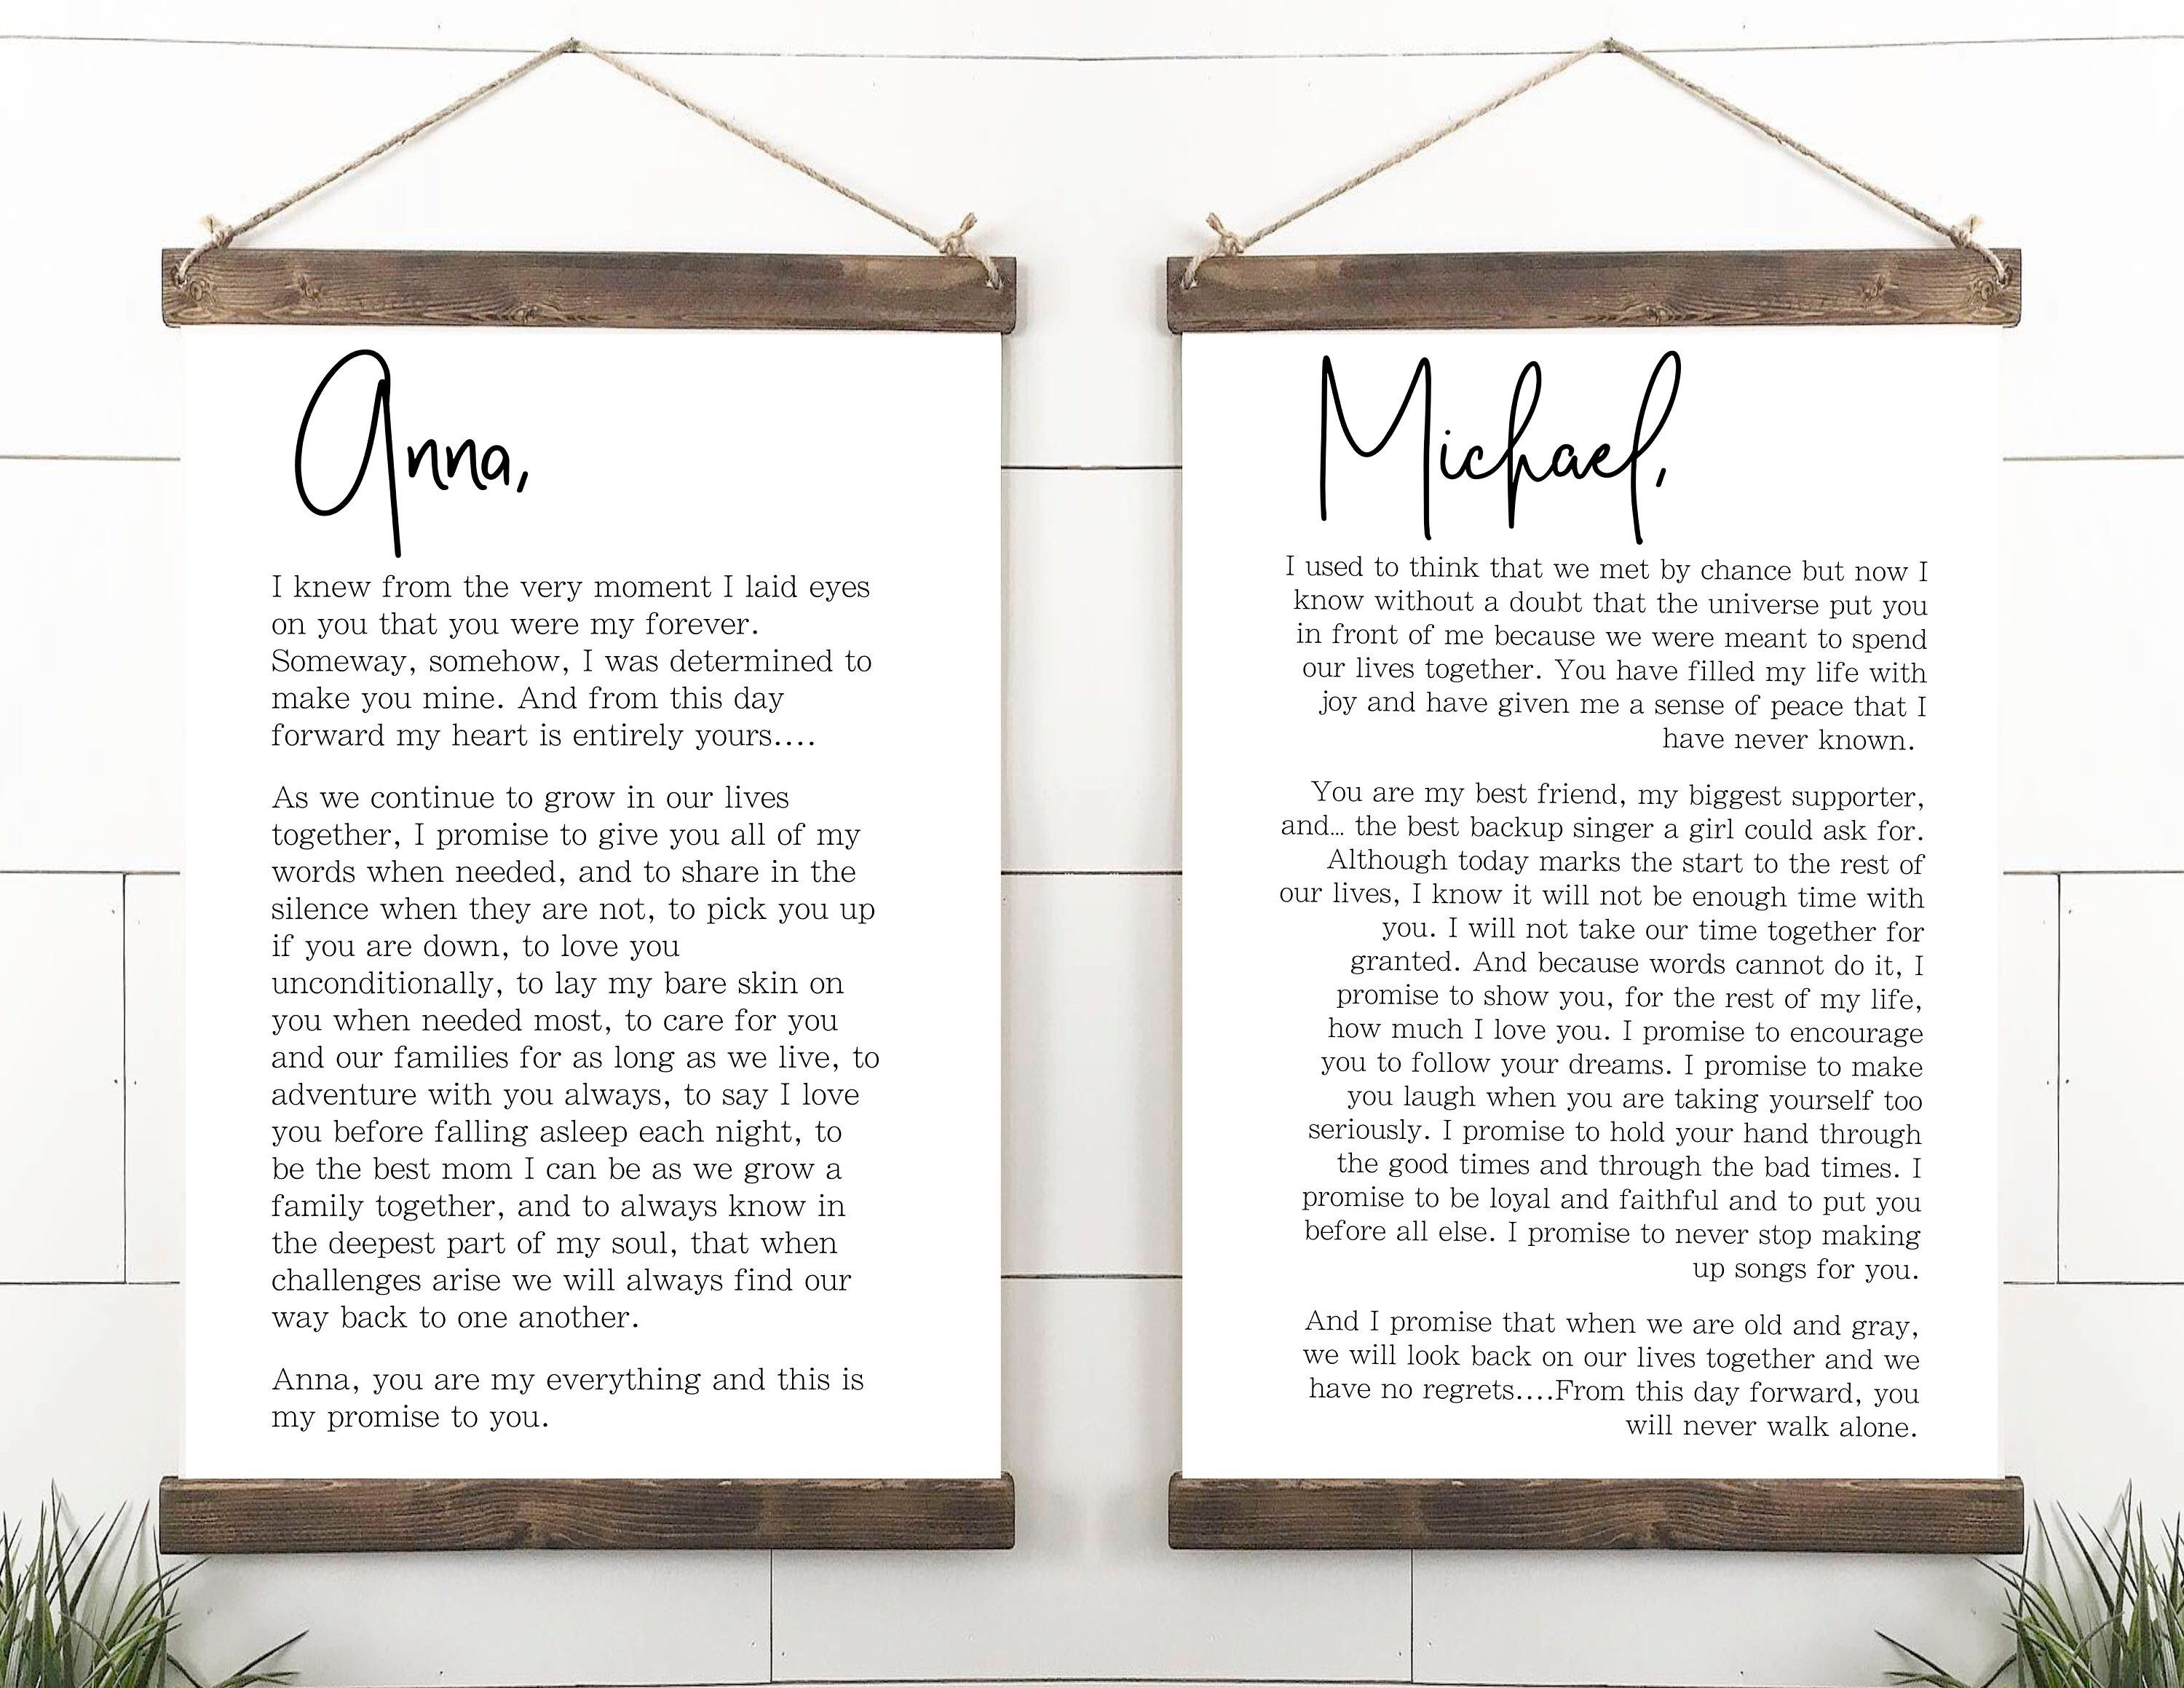 Wedding Vows Sign His And Her Customized Vows Wedding Vow Etsy Master Bedrooms Decor Wall Art Master Wall Decor Bedroom